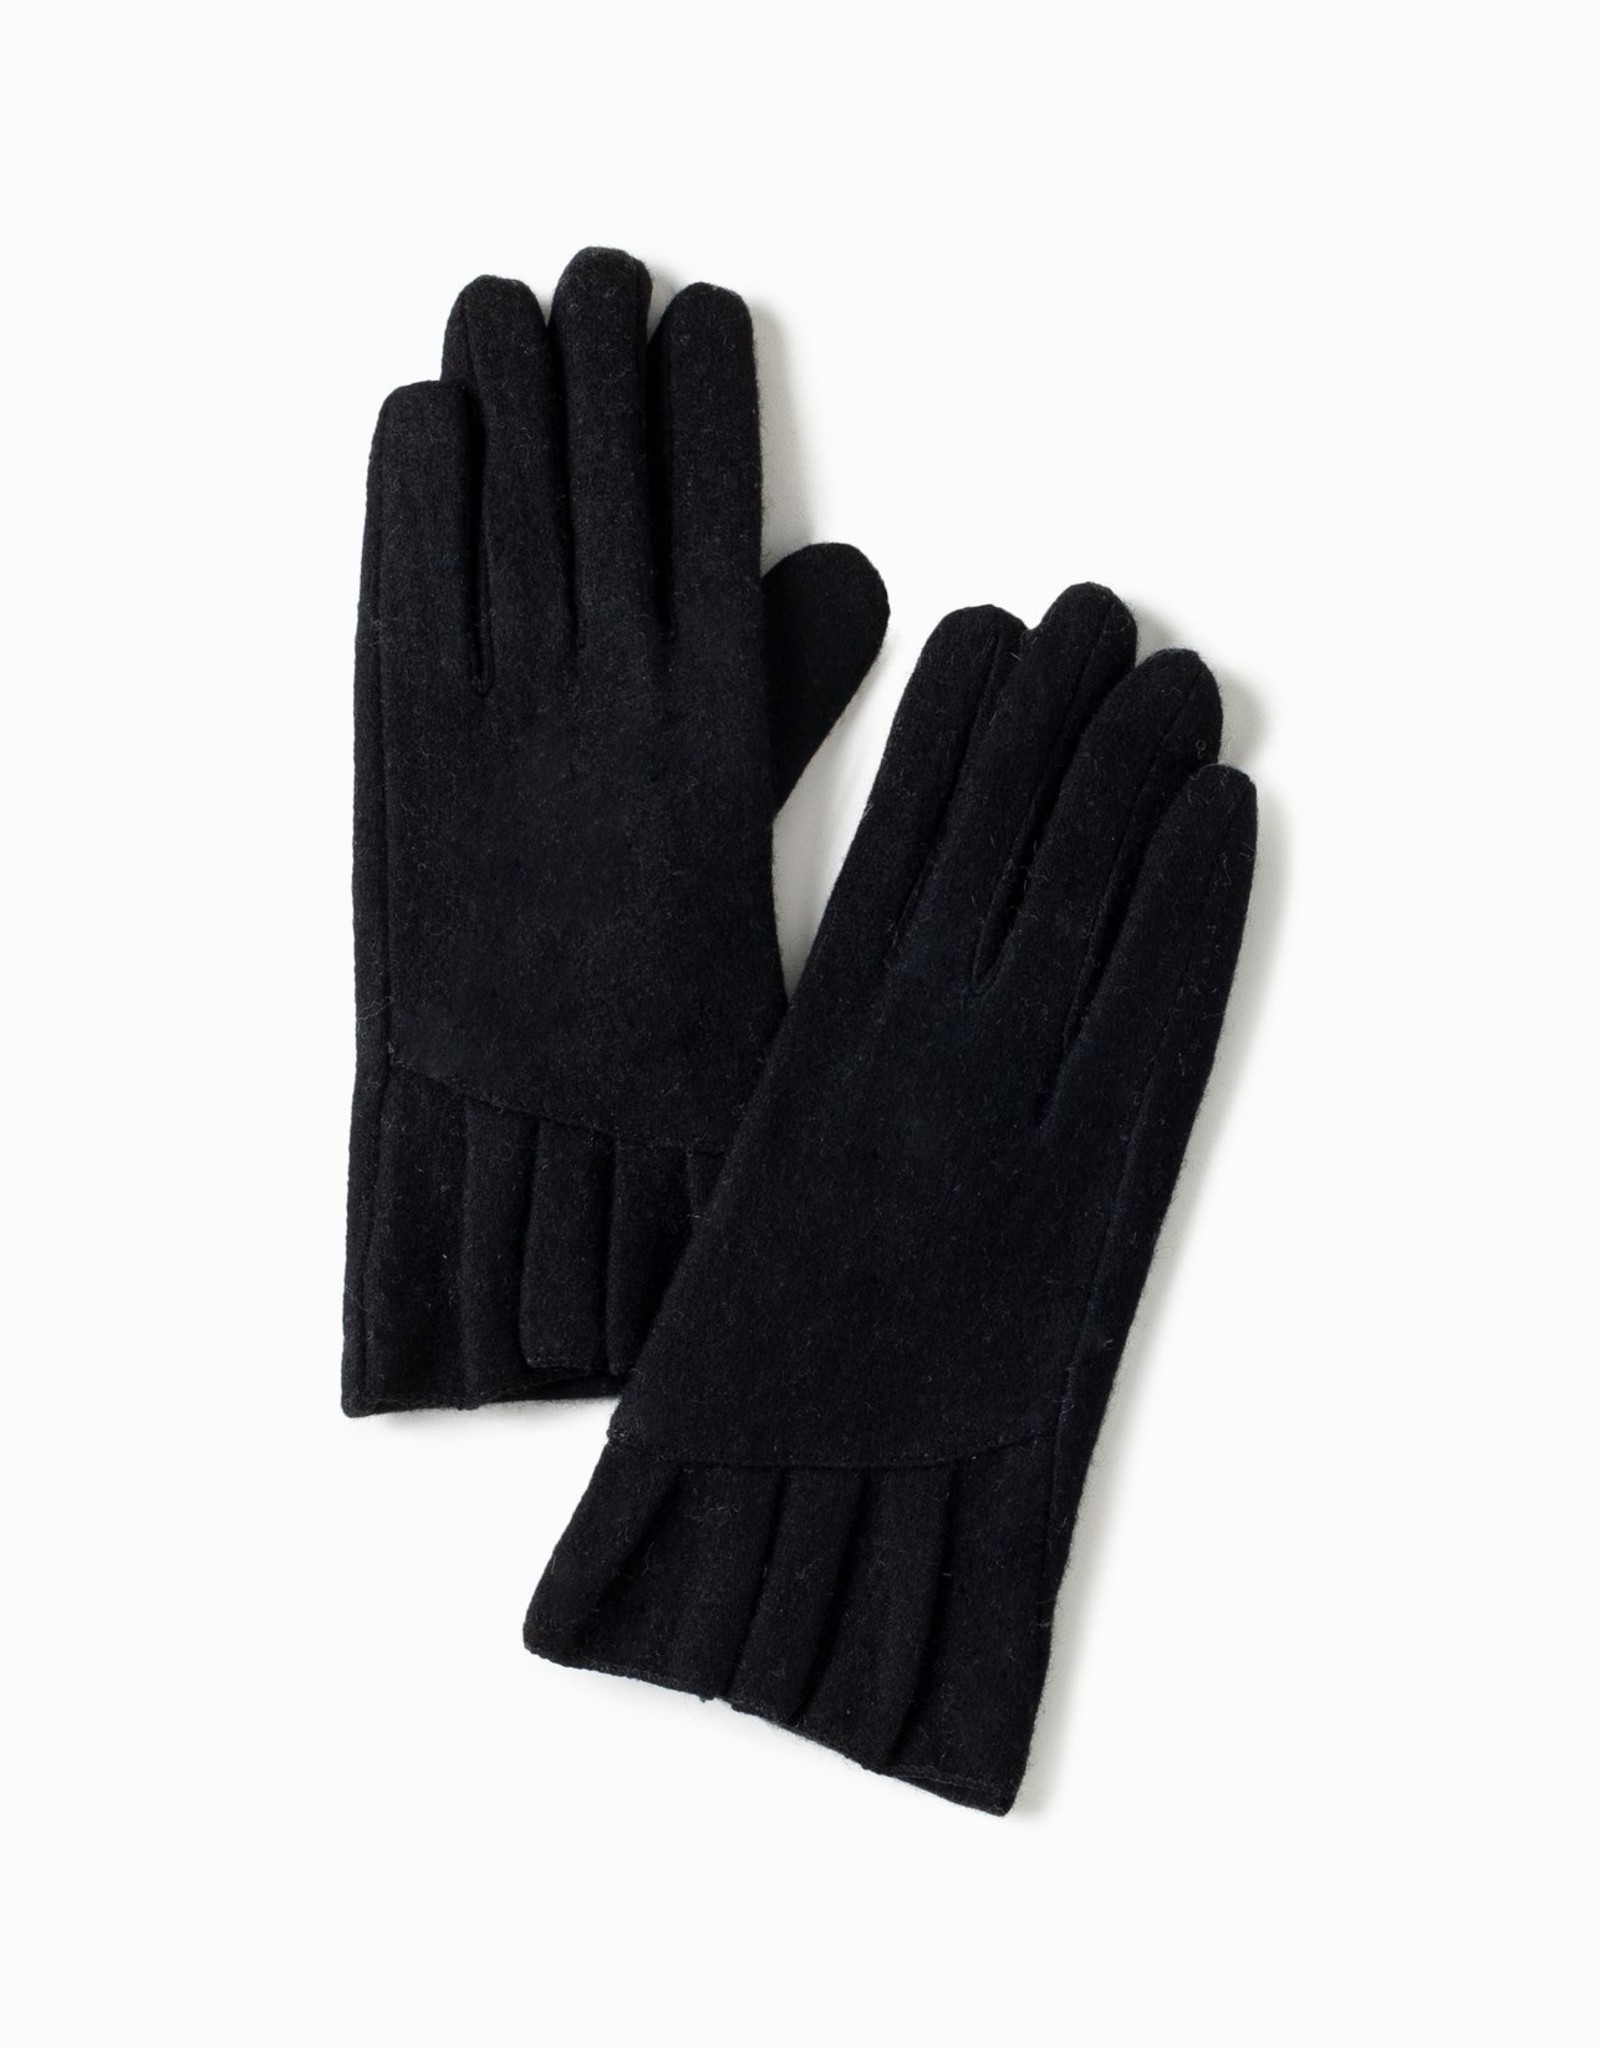 Look by M Pleated Cuff Gloves